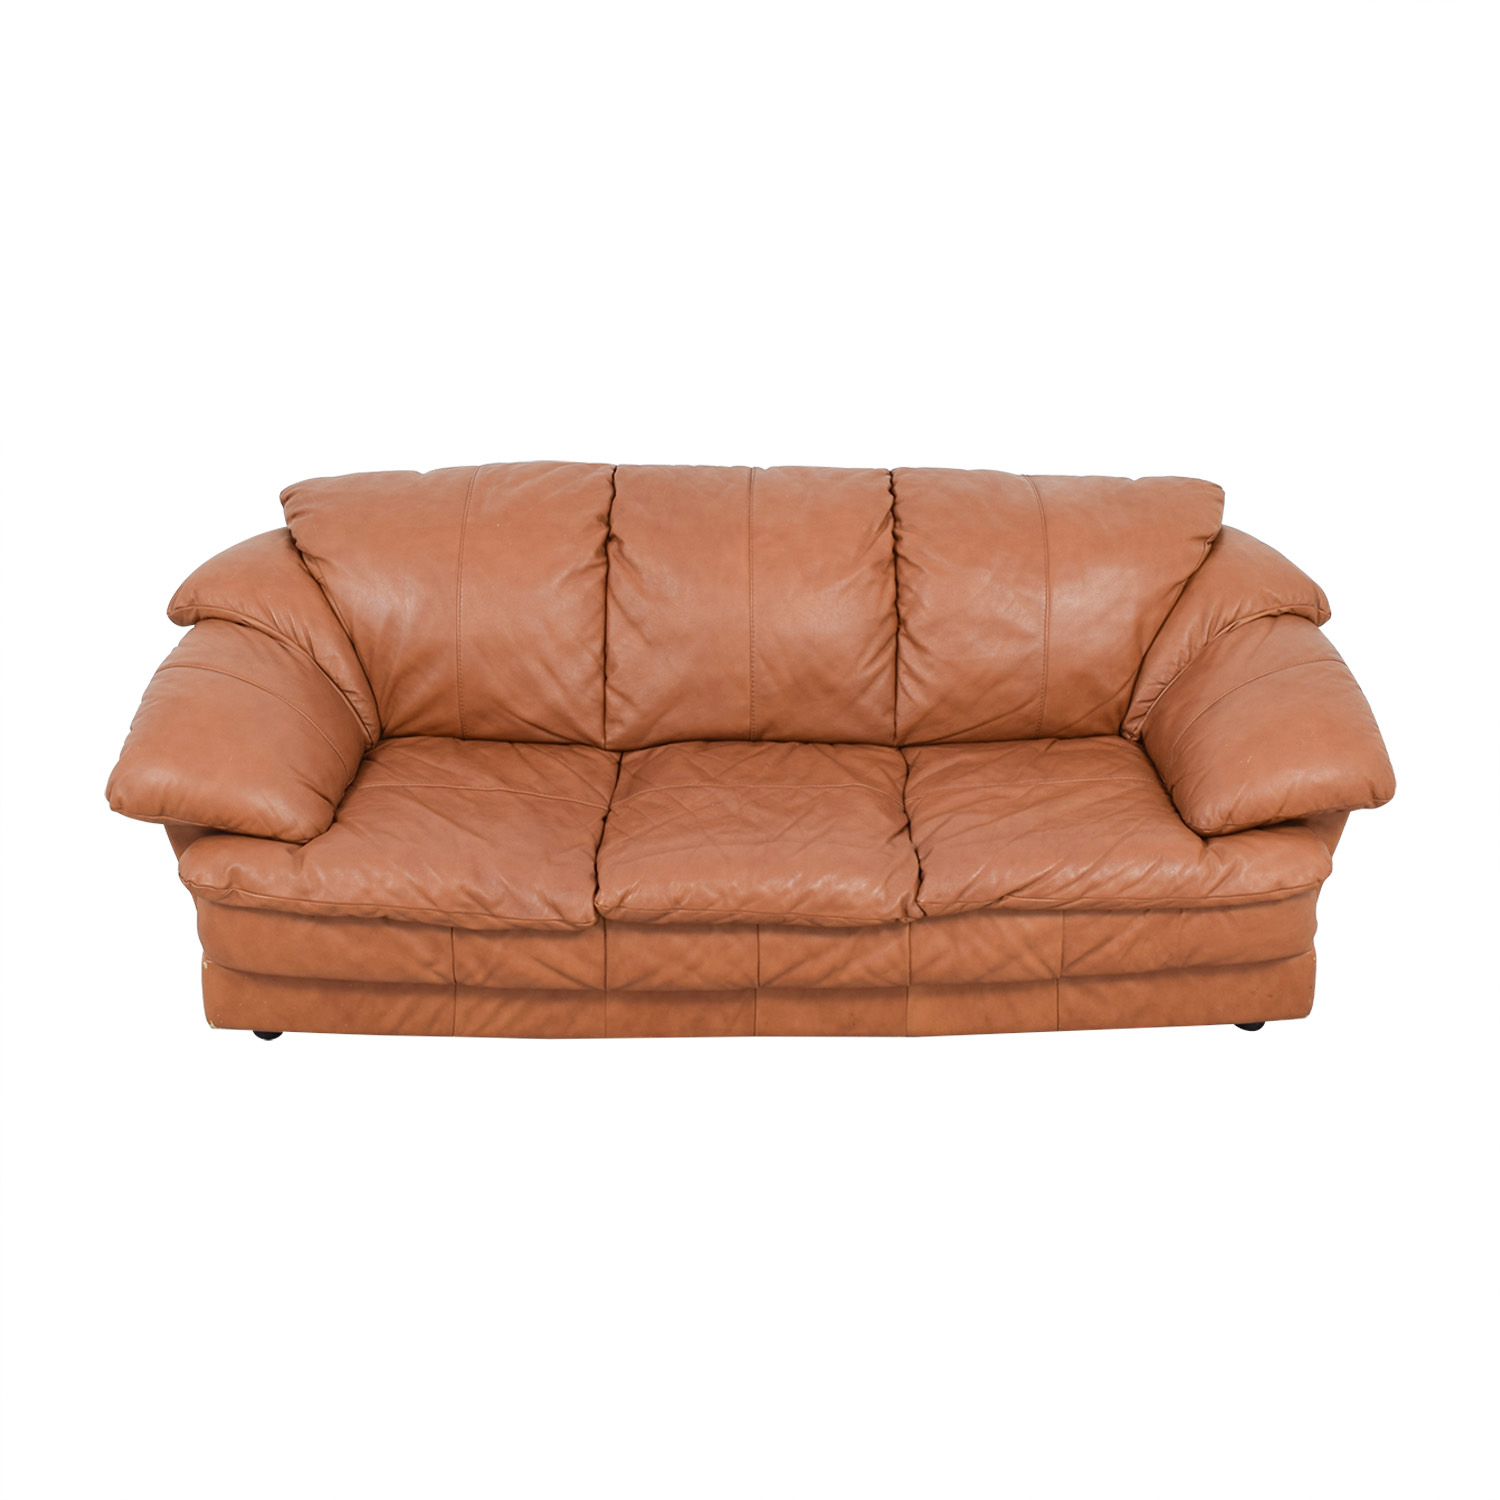 shop  Brown Leather Three-Cushion Sofa online